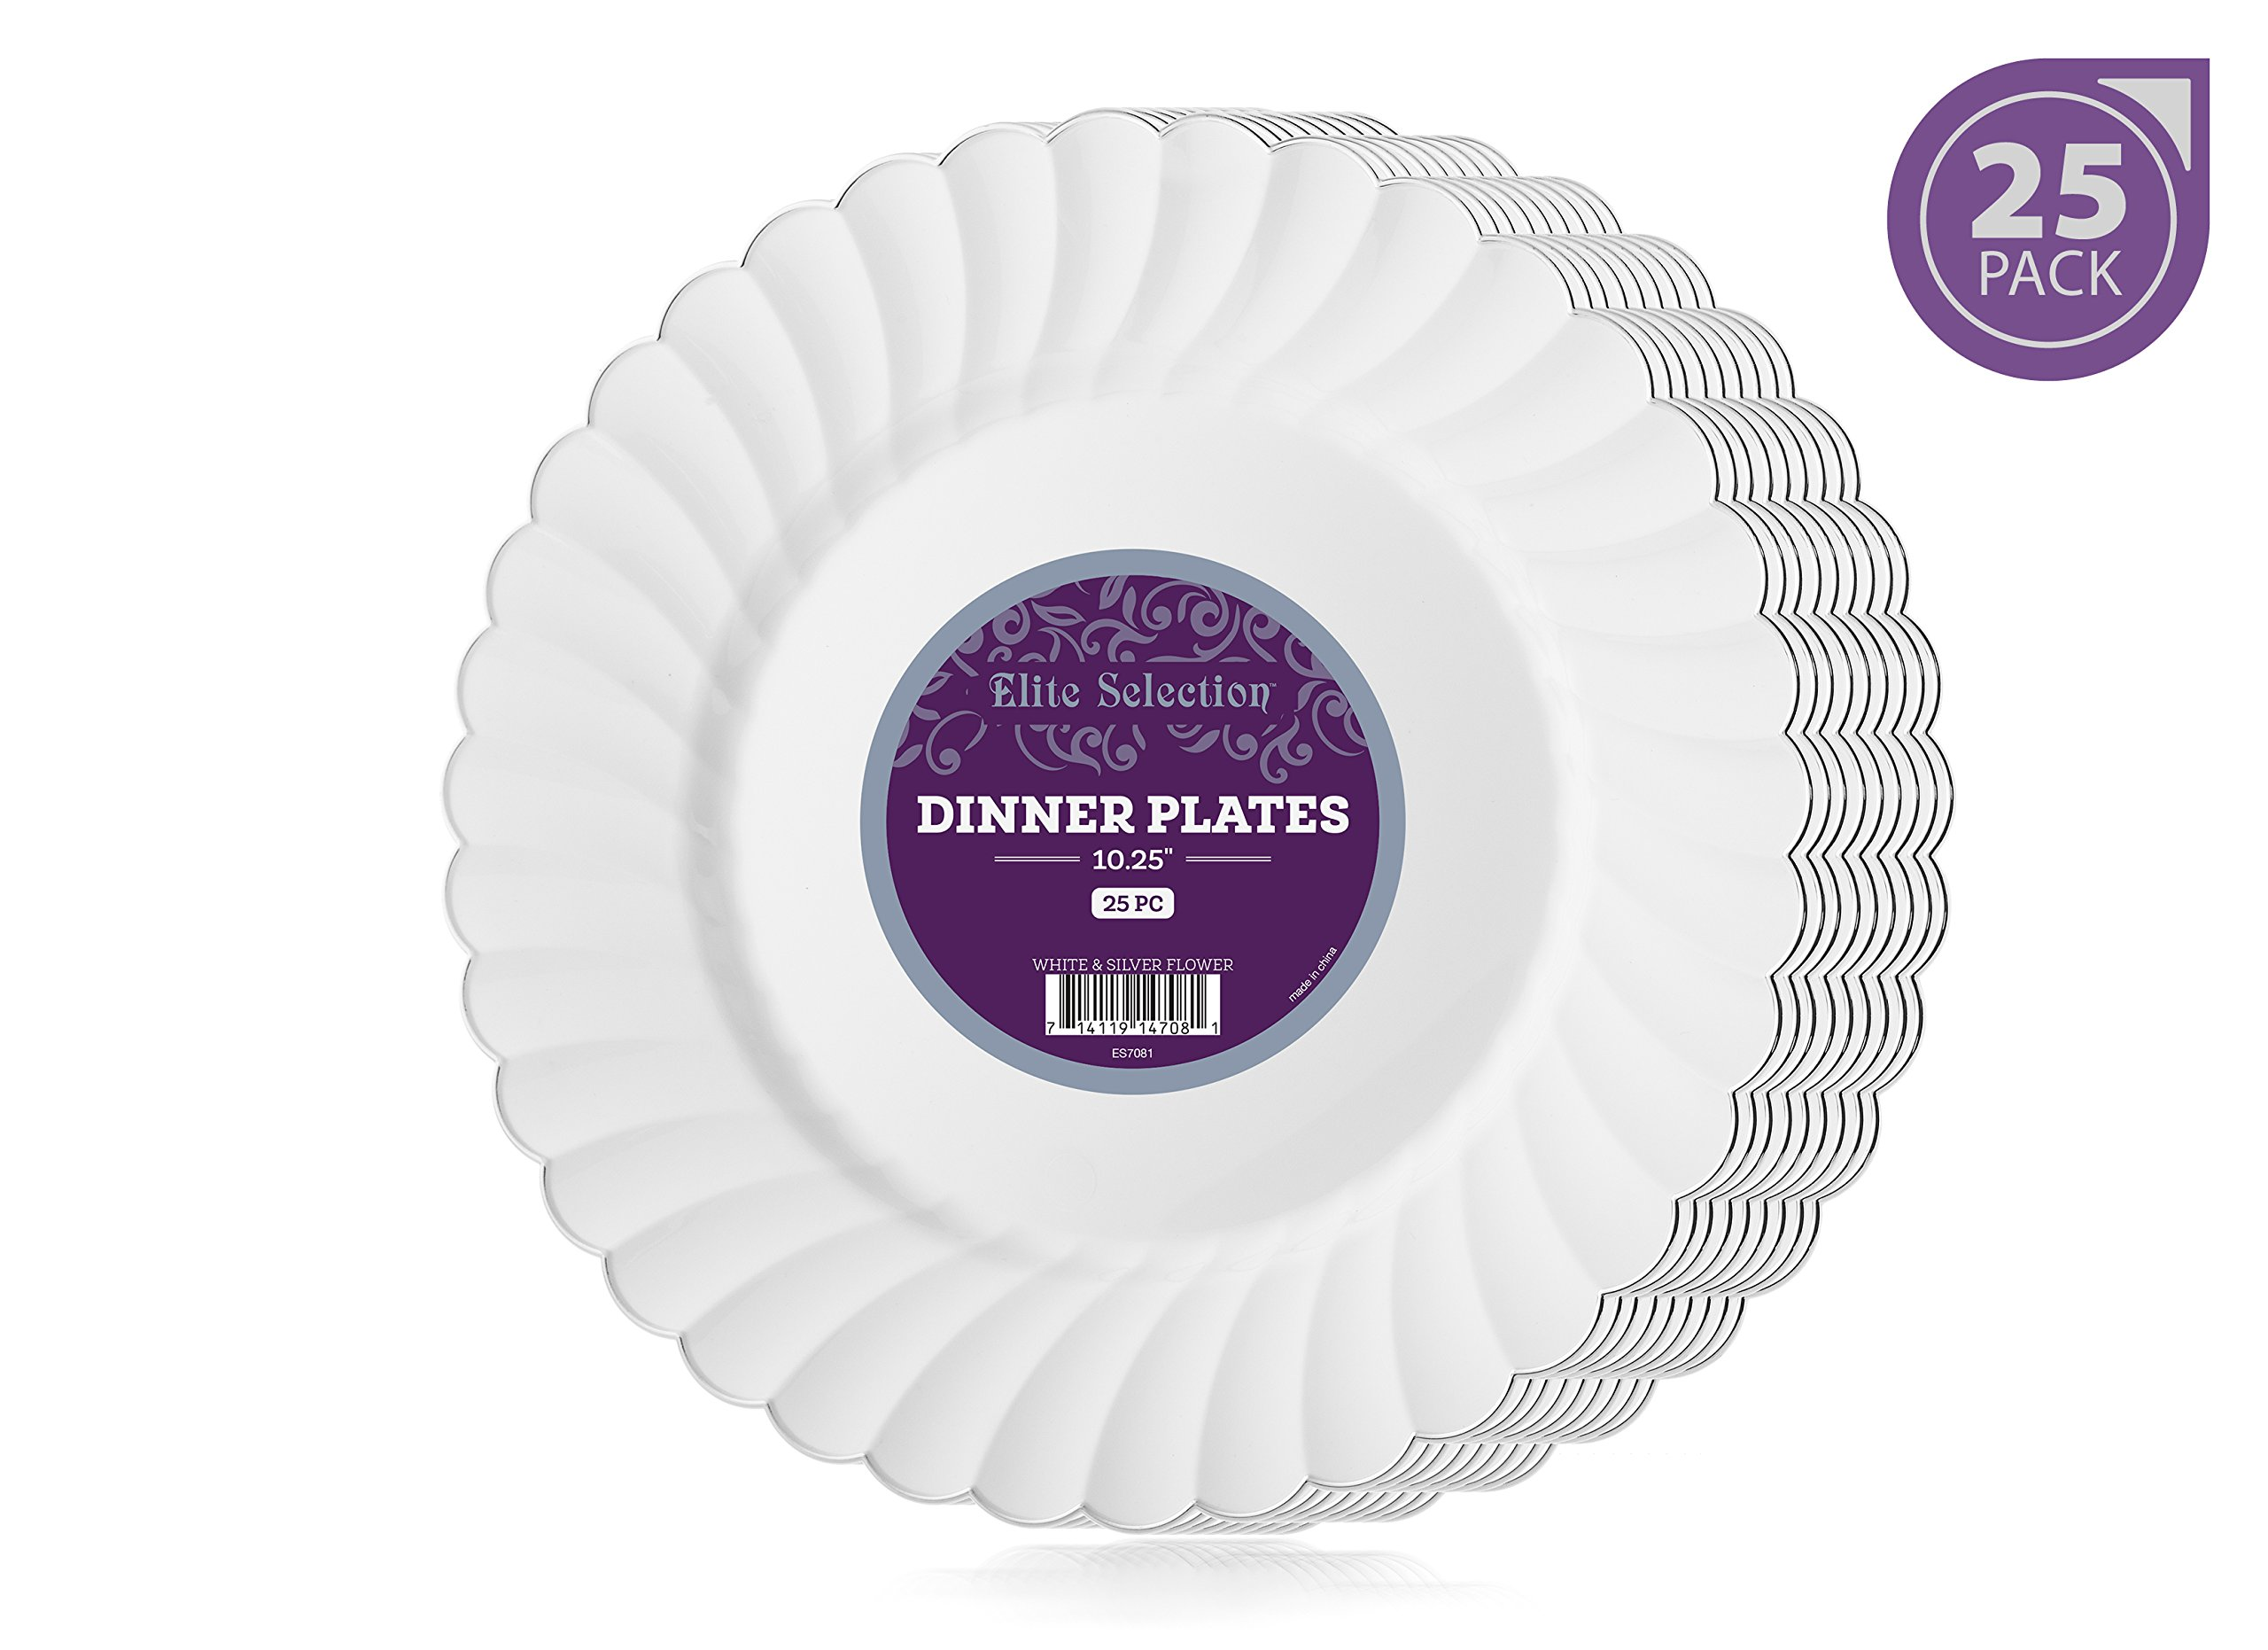 Elite Selection Pack Of 25 White Dinner Disposable Party Plastic Plates With Silver Flower Rim 10.25-Inch